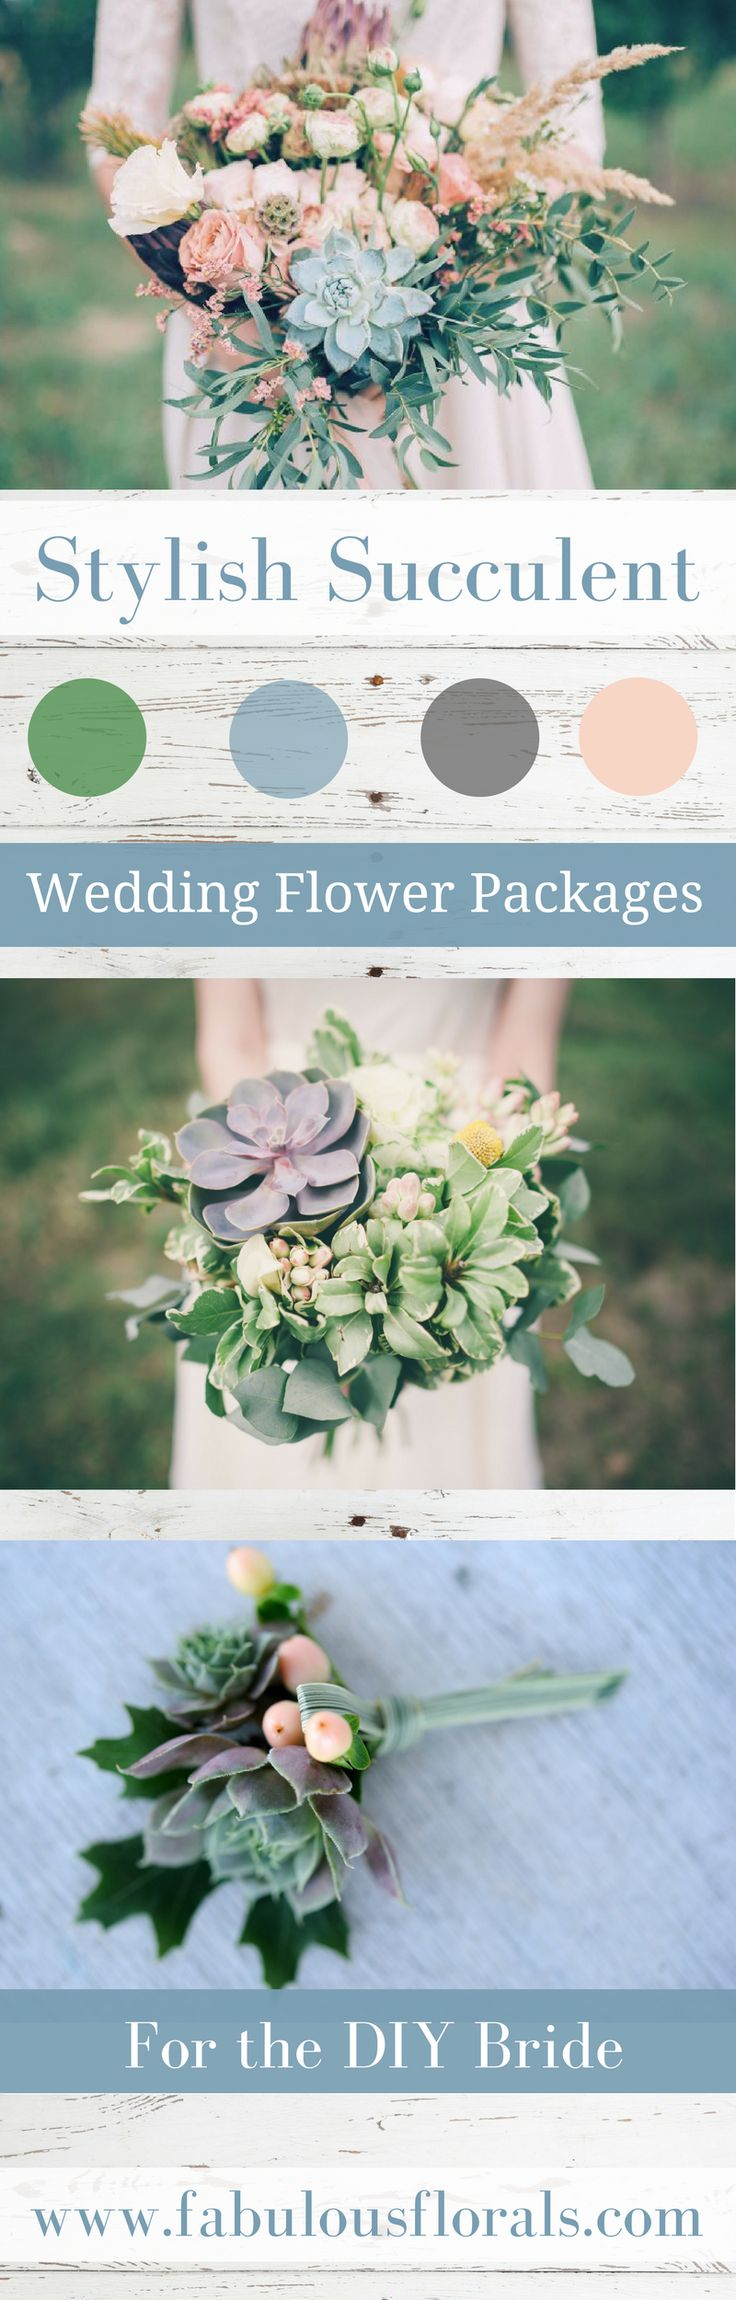 Wedding trends 2018! Succulent DIY wedding Flower Packages! Buy Easy Complete DIY bouquet, Boutonniere & Centerpiece Flower packages online!  How to make a wedding bouquet DIY wedding bouquet tutorials and instructions. #weddingflowerpackages #weddingflowers #weddingtrends